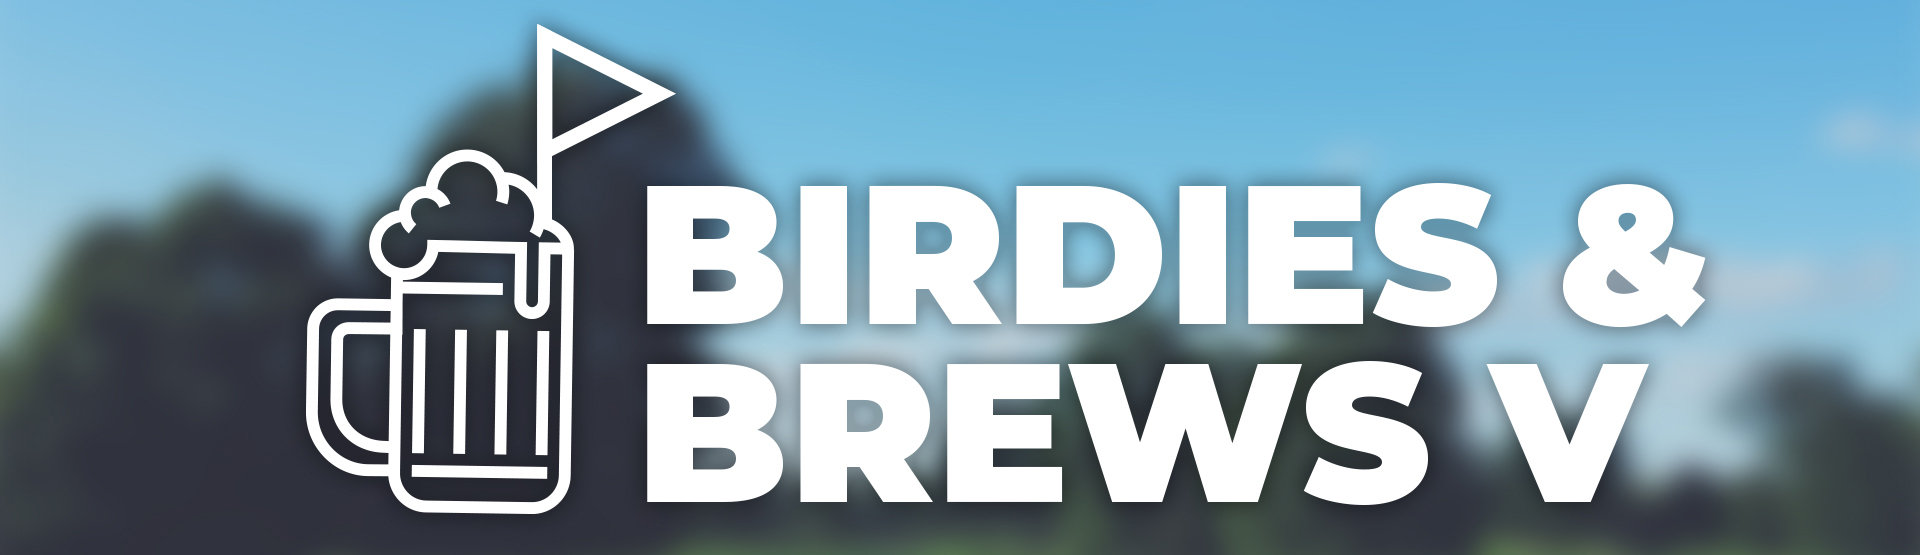 birdies-brews-header-for-web.jpg